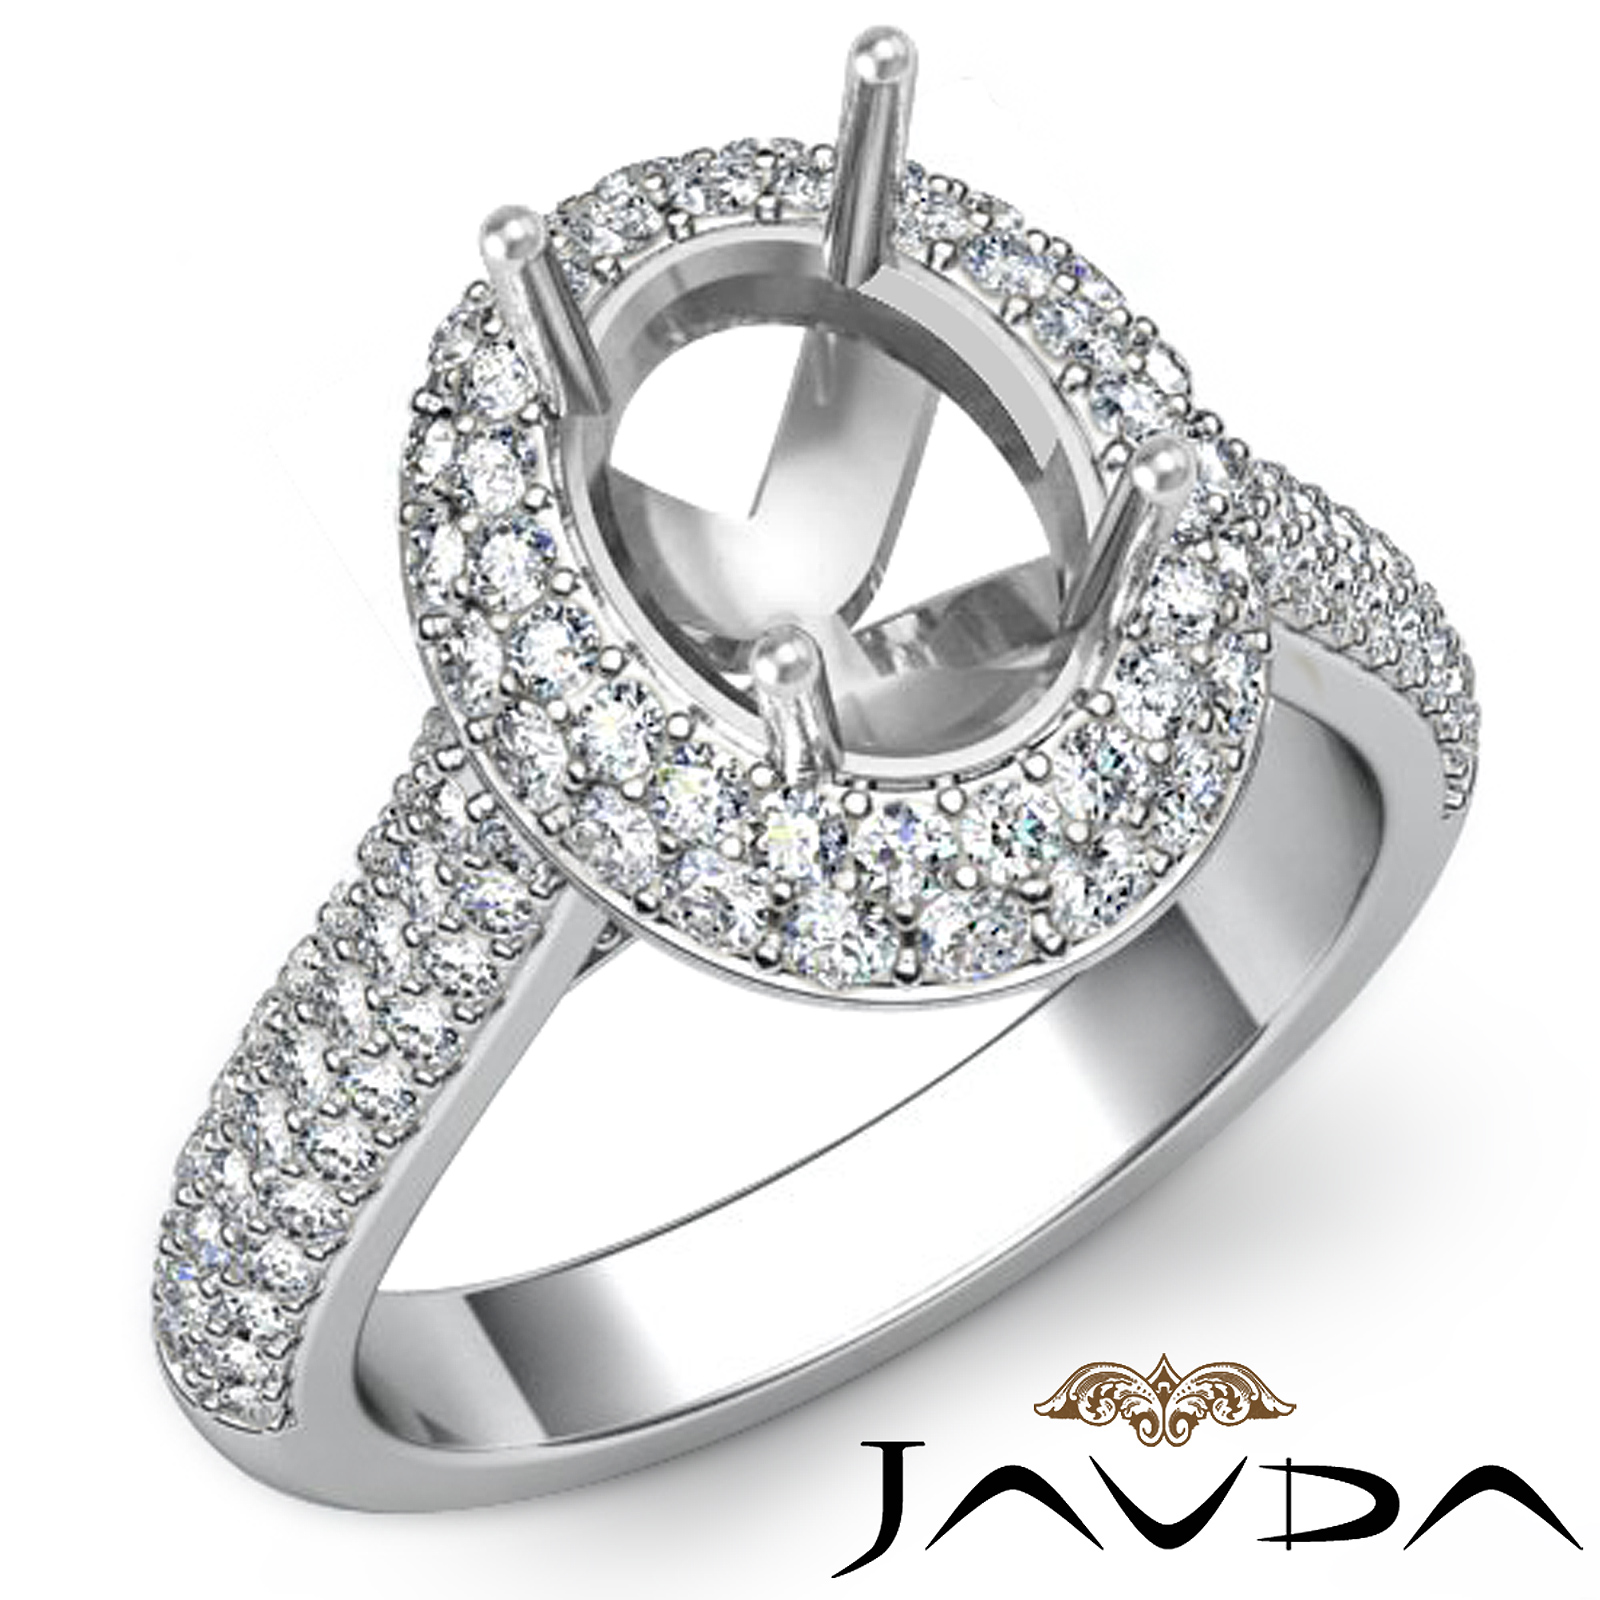 Diamond Engagement Ring Halo Pave Setting 18k White Gold Oval Semi Mount 1 5C